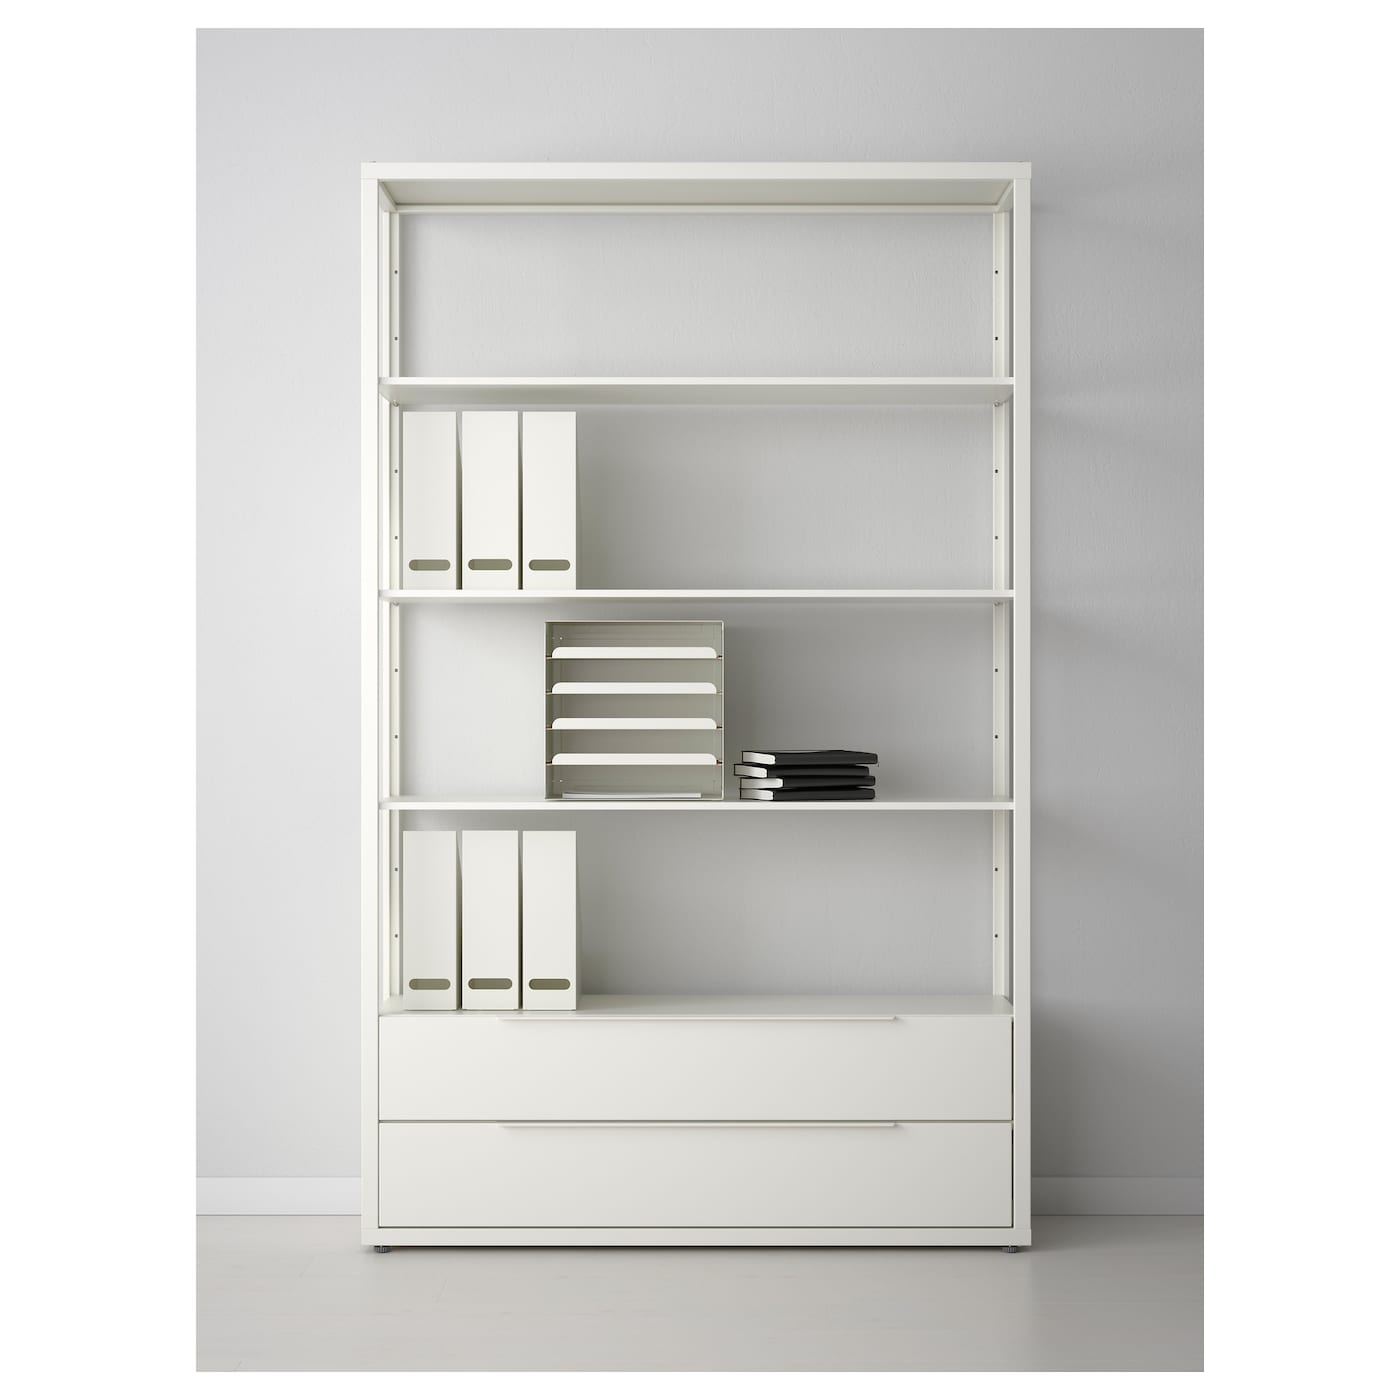 fj lkinge tag re avec tiroirs blanc 118x193 cm ikea. Black Bedroom Furniture Sets. Home Design Ideas